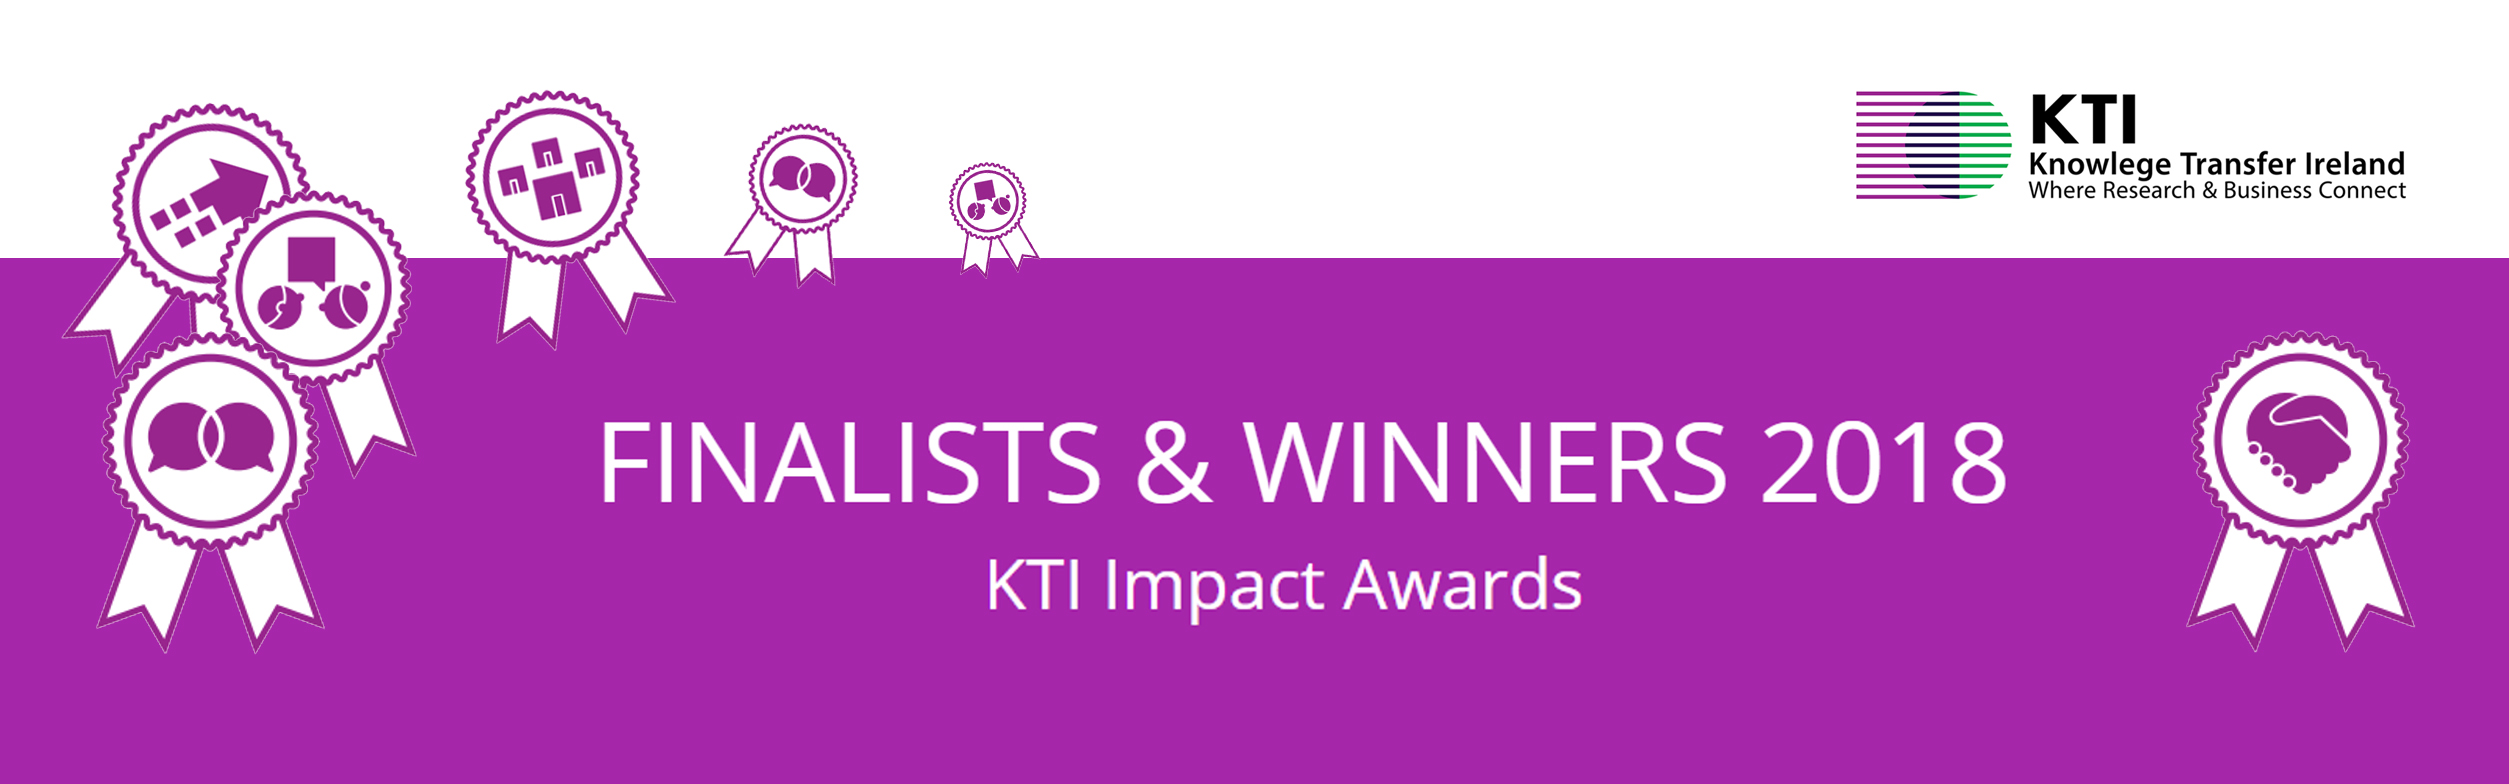 ENBIO has been nominated for a Collaborative Research Award as part of the Knowledge Transfer Ireland Awards 2018!